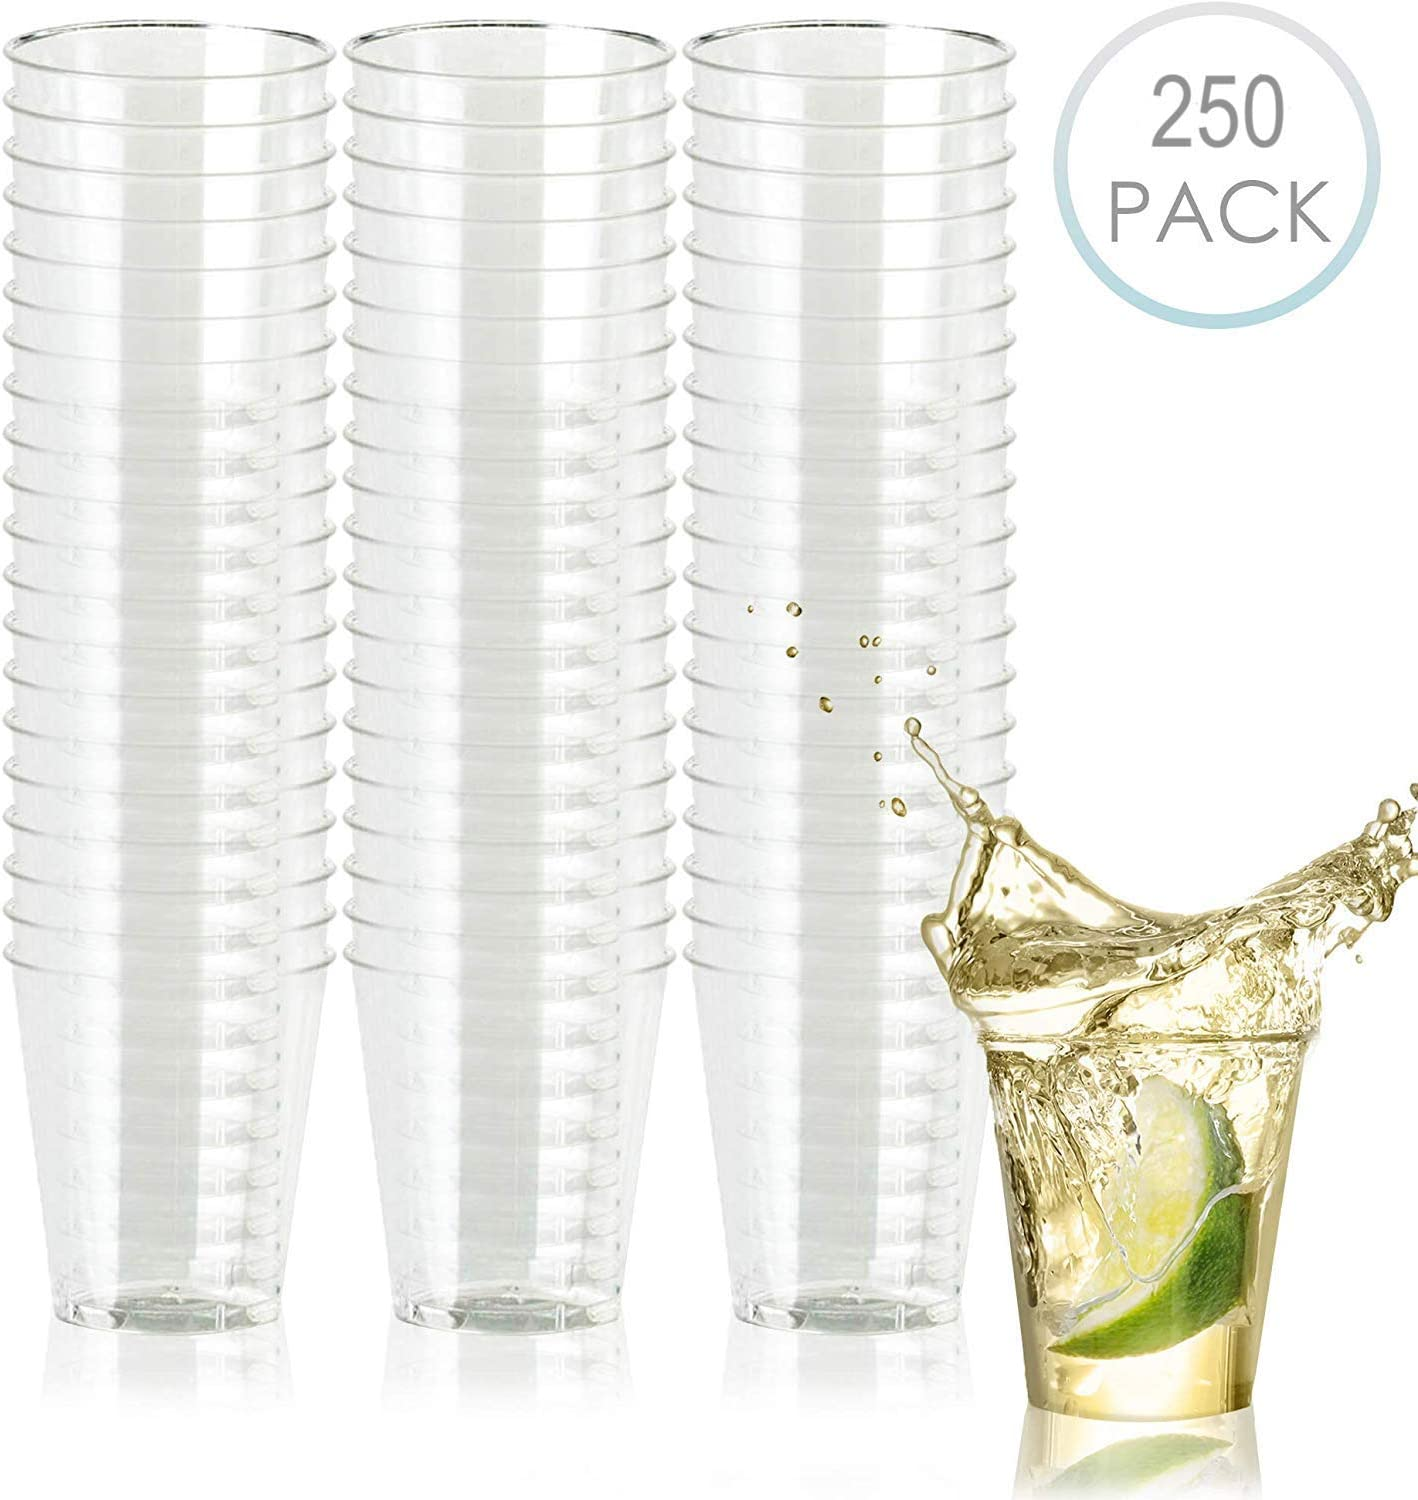 SHINE 100 Disposable plastic CLEAR Party Shot Glass,Essential Cup for all parties